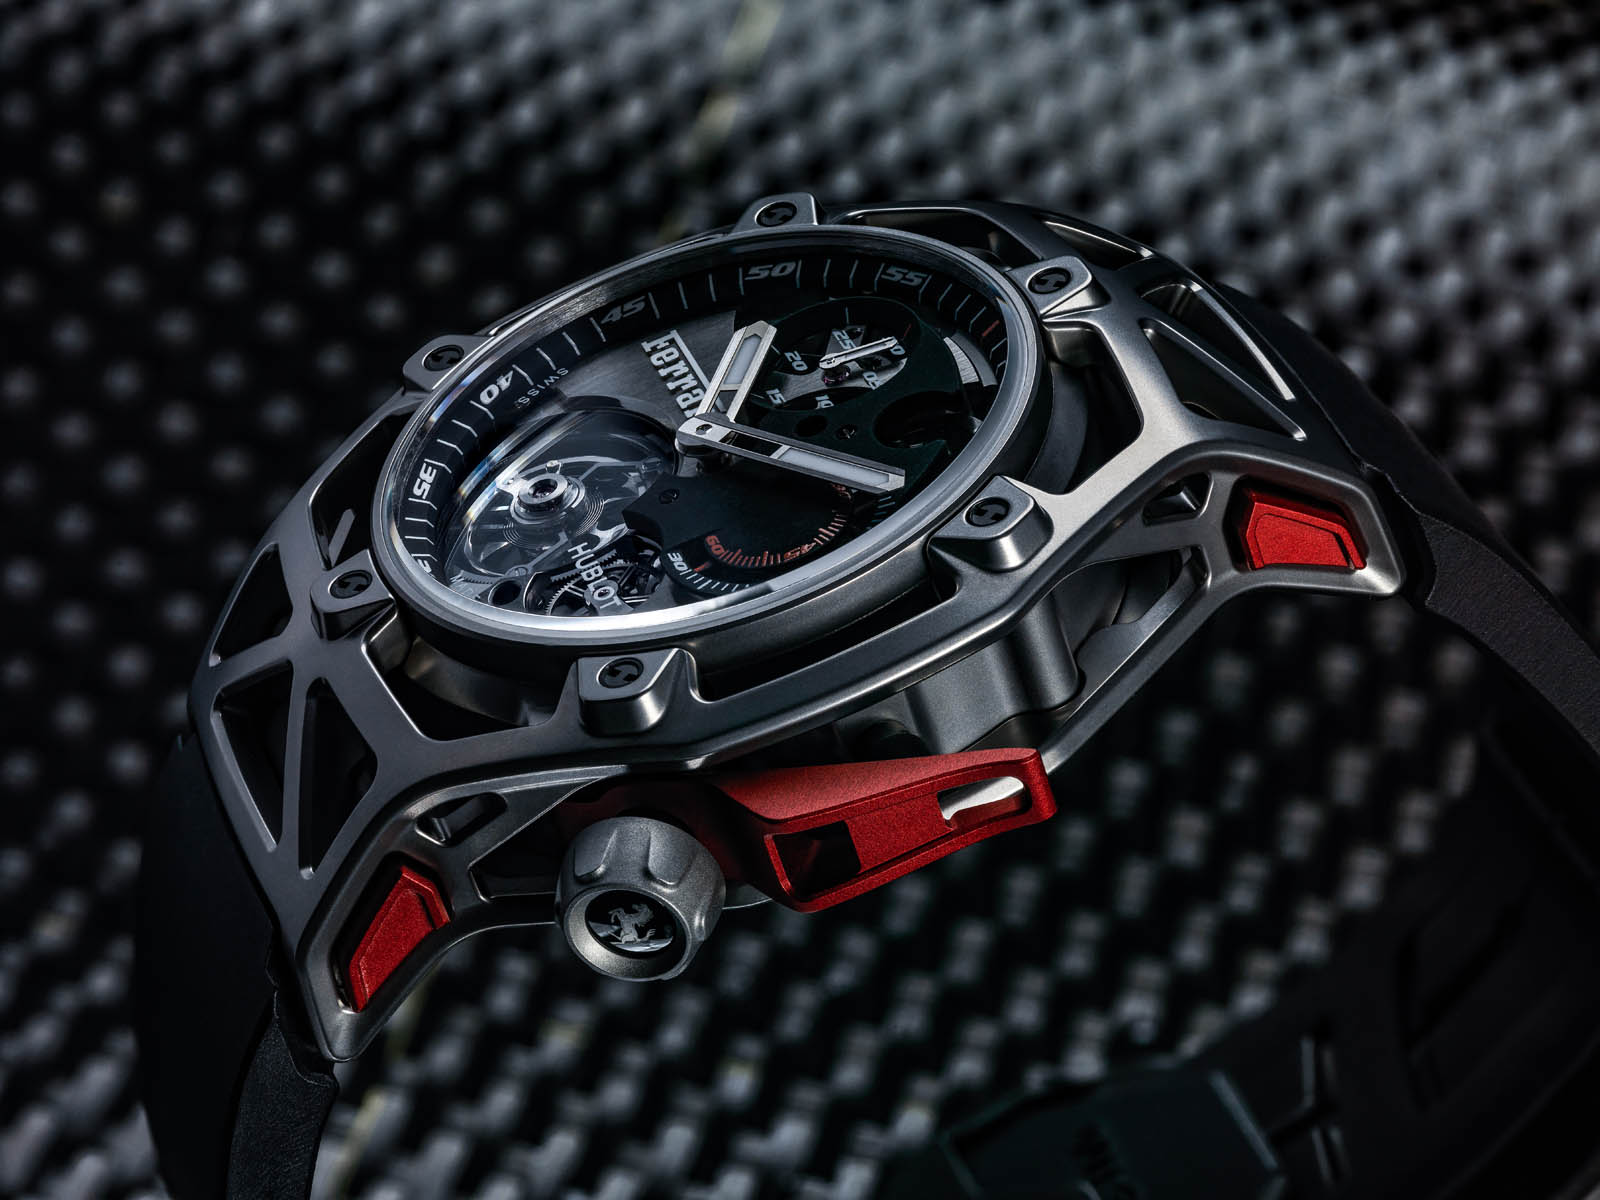 Hublot Techframe (8)